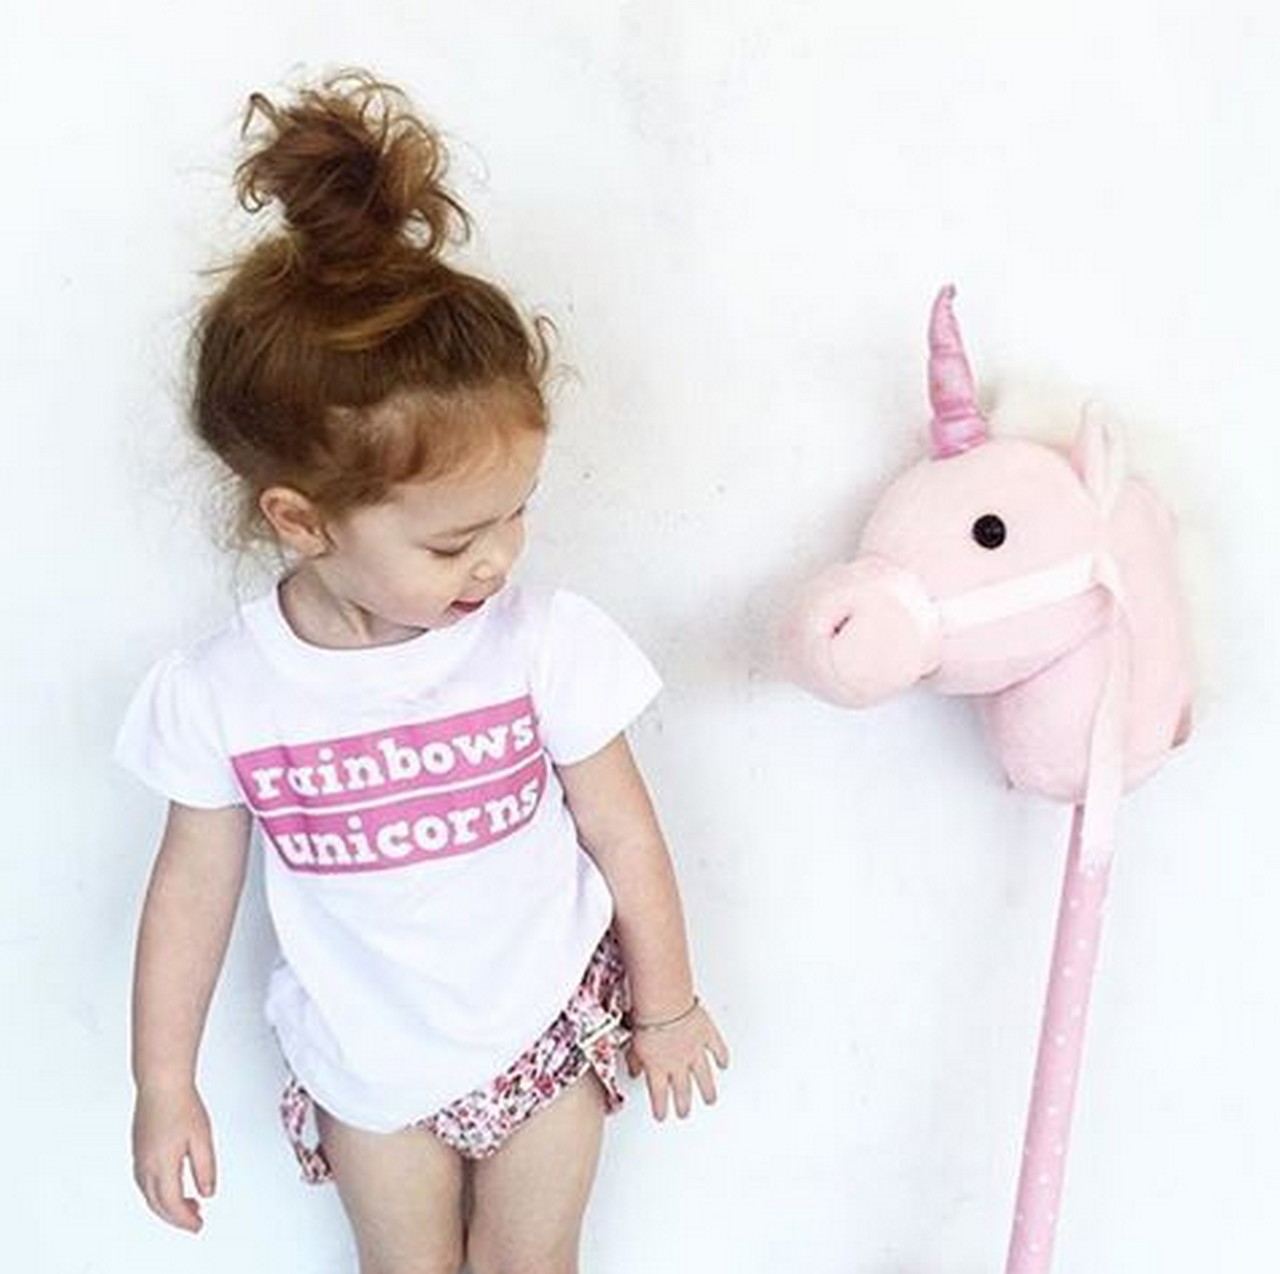 Design your own t-shirt for toddlers -  Rainbows Unicorns Design Your Own Tee For Evia Sheloveslaughslives